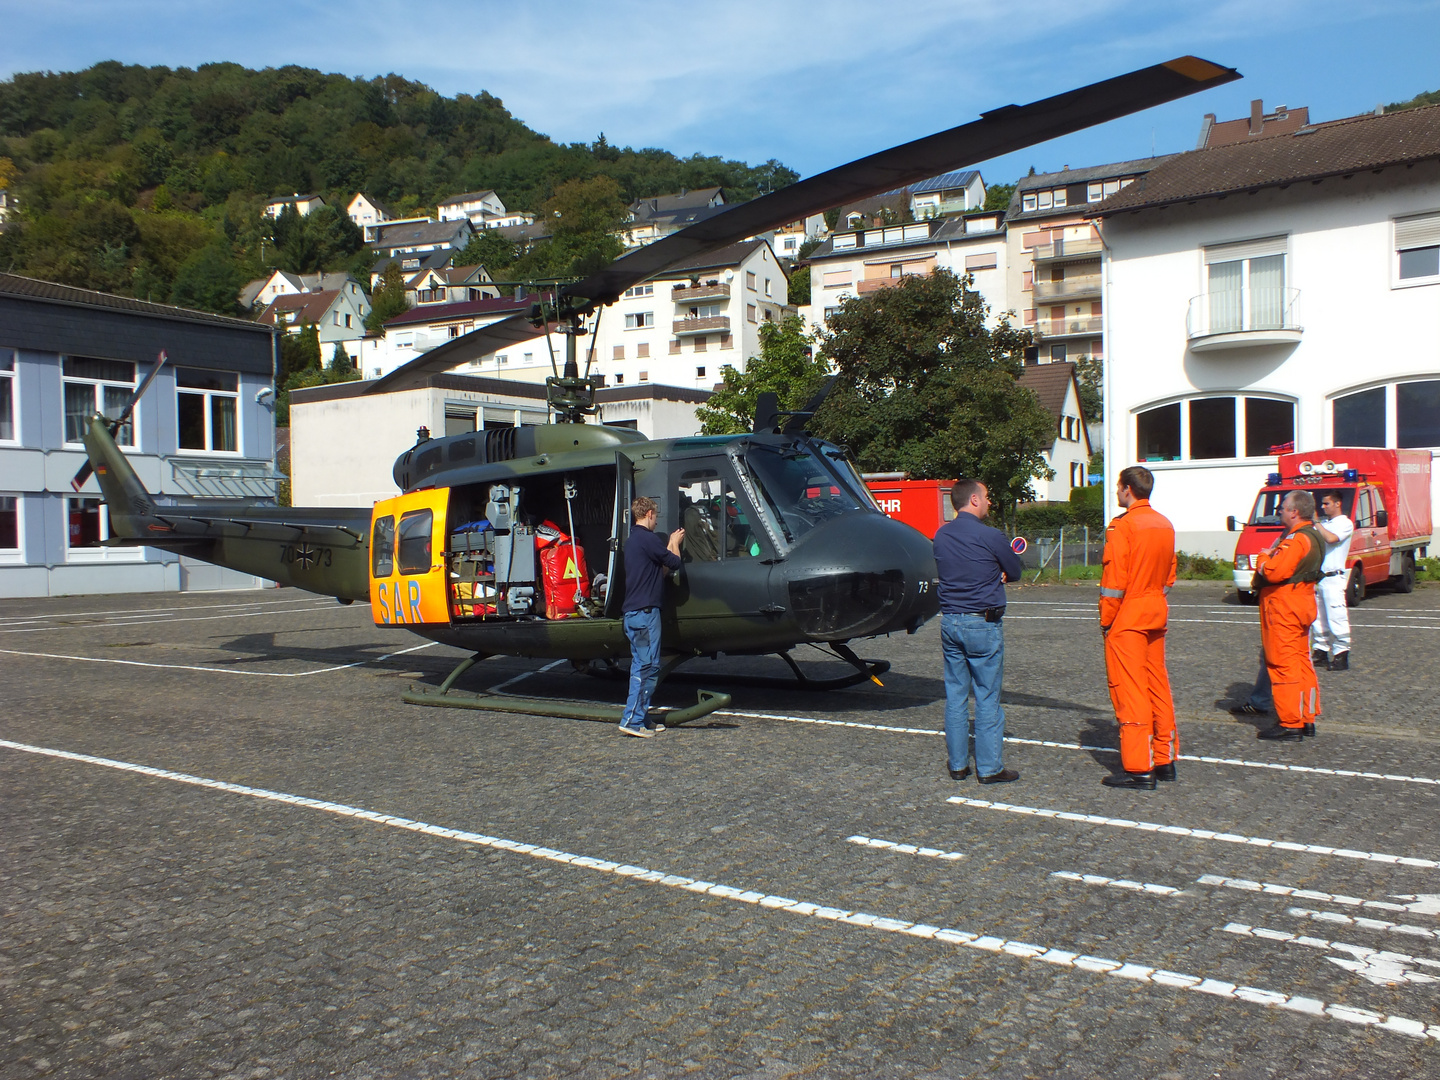 SAR 41 in Bad Ems